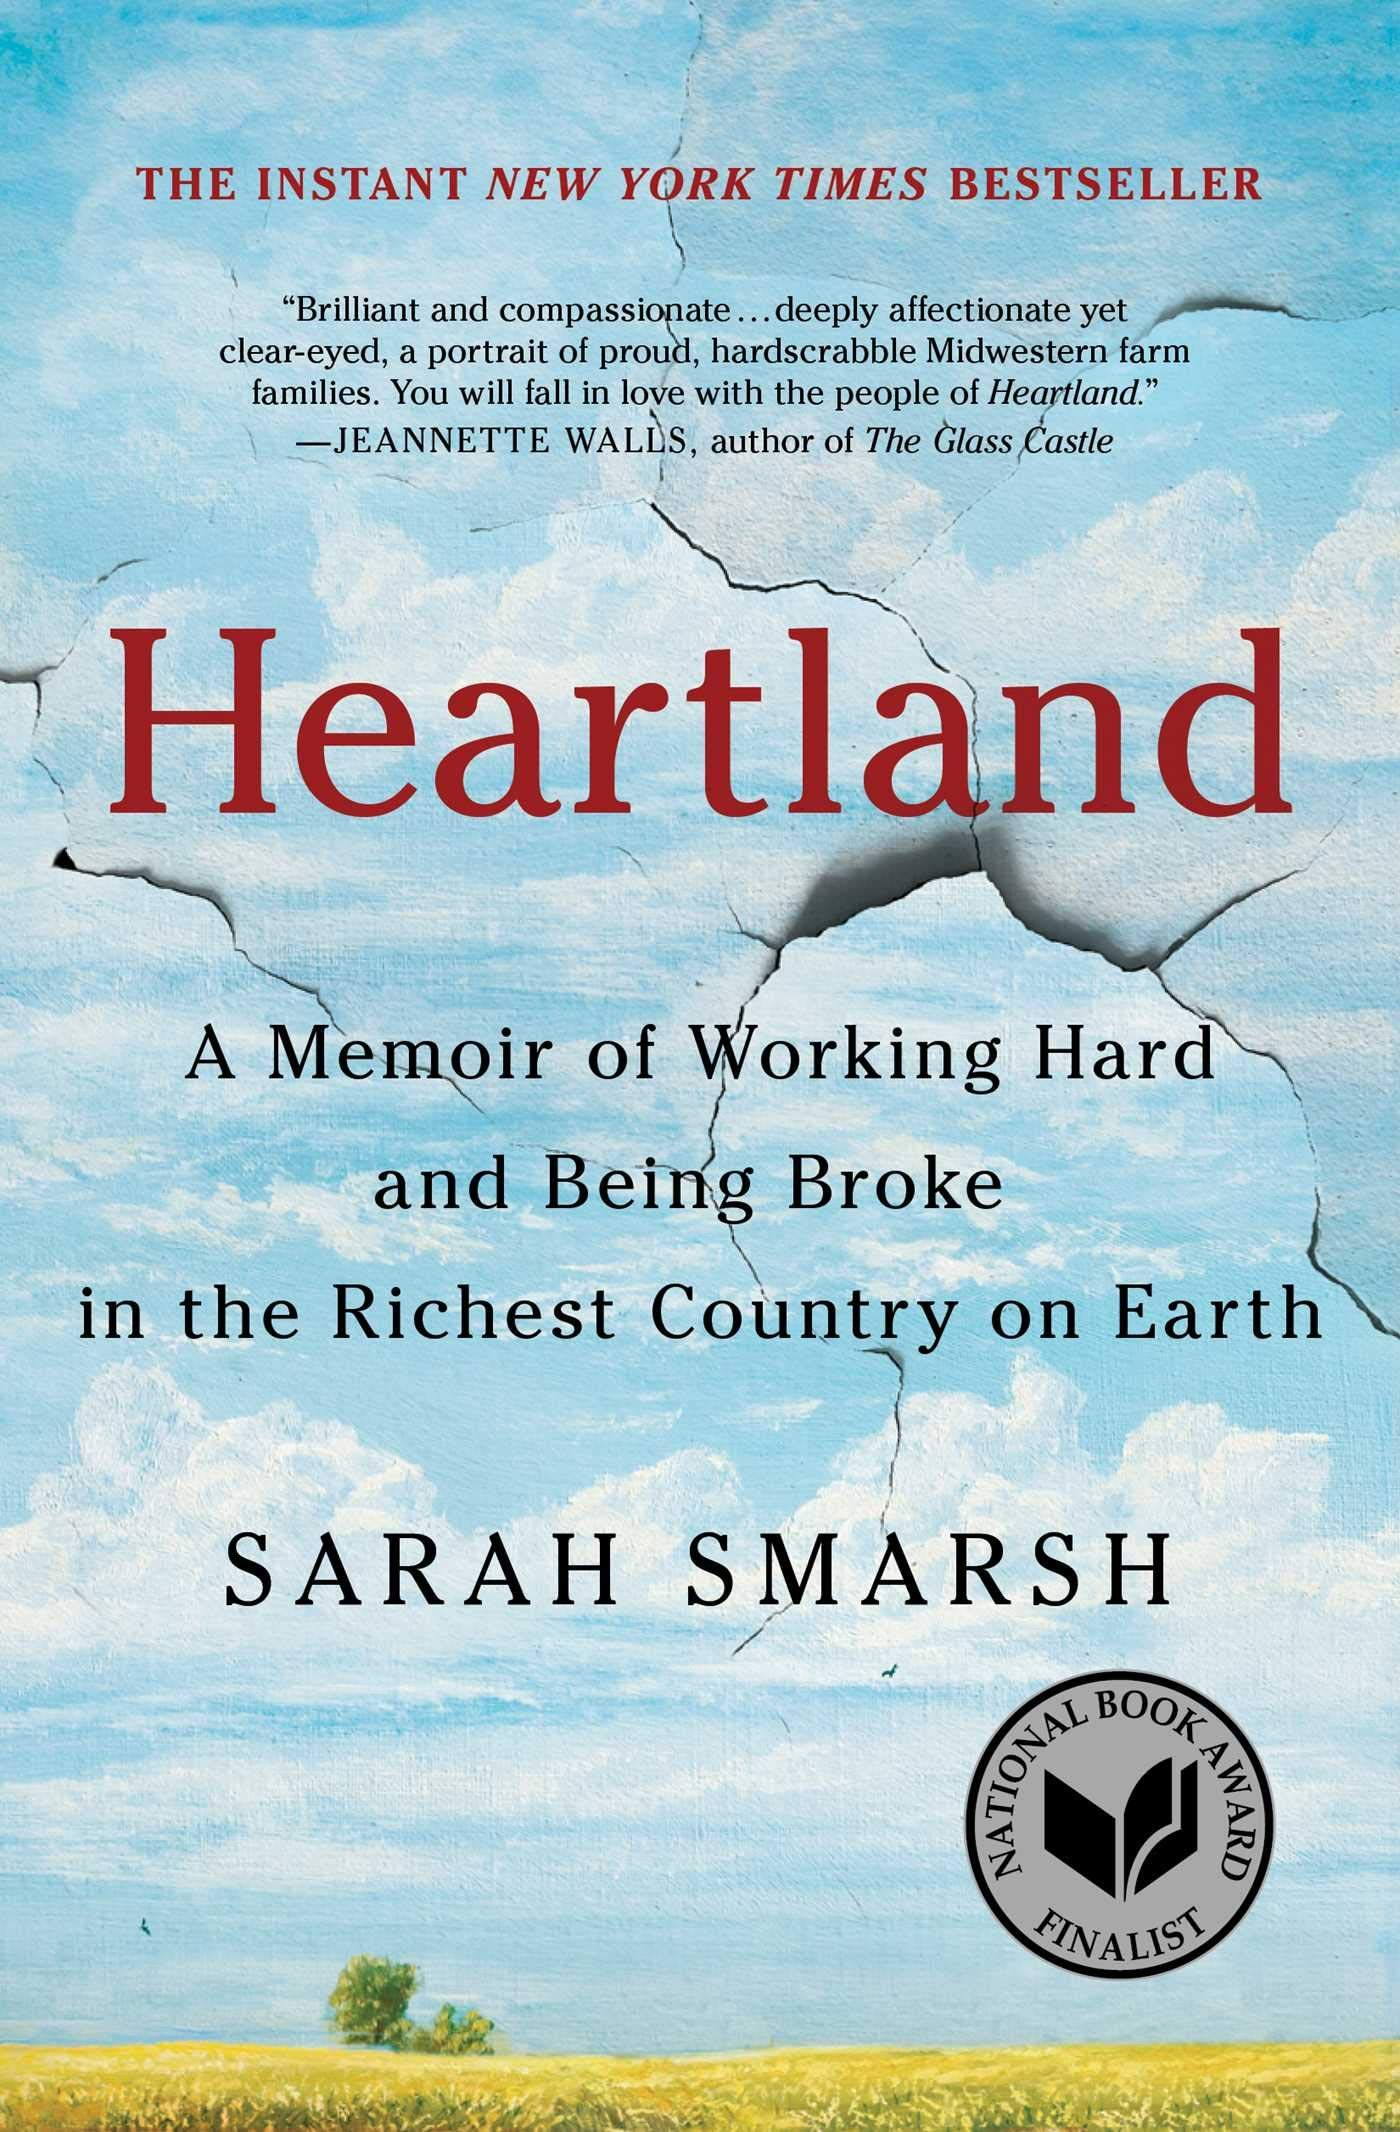 Heartland A Memoir Of Working Hard And Being Broke In The Richest Country On Earth Good Books National Book Award Book Awards